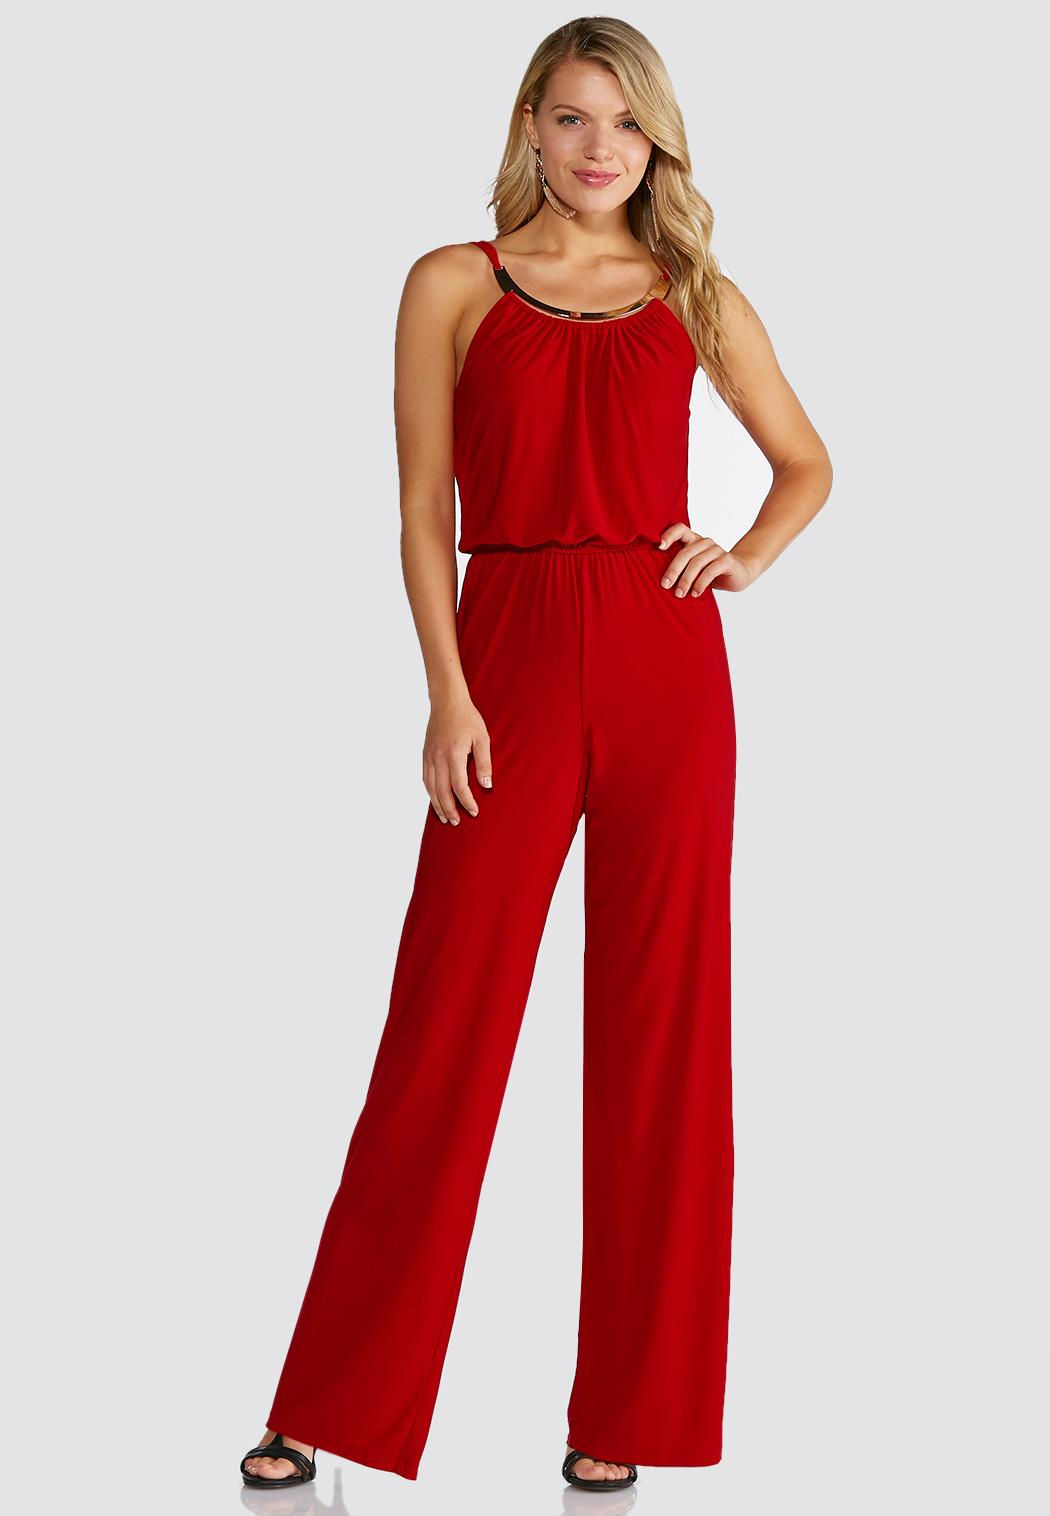 Red Embellished Jumpsuit Dresses Cato Fashions - What is invoice payment plus size online stores